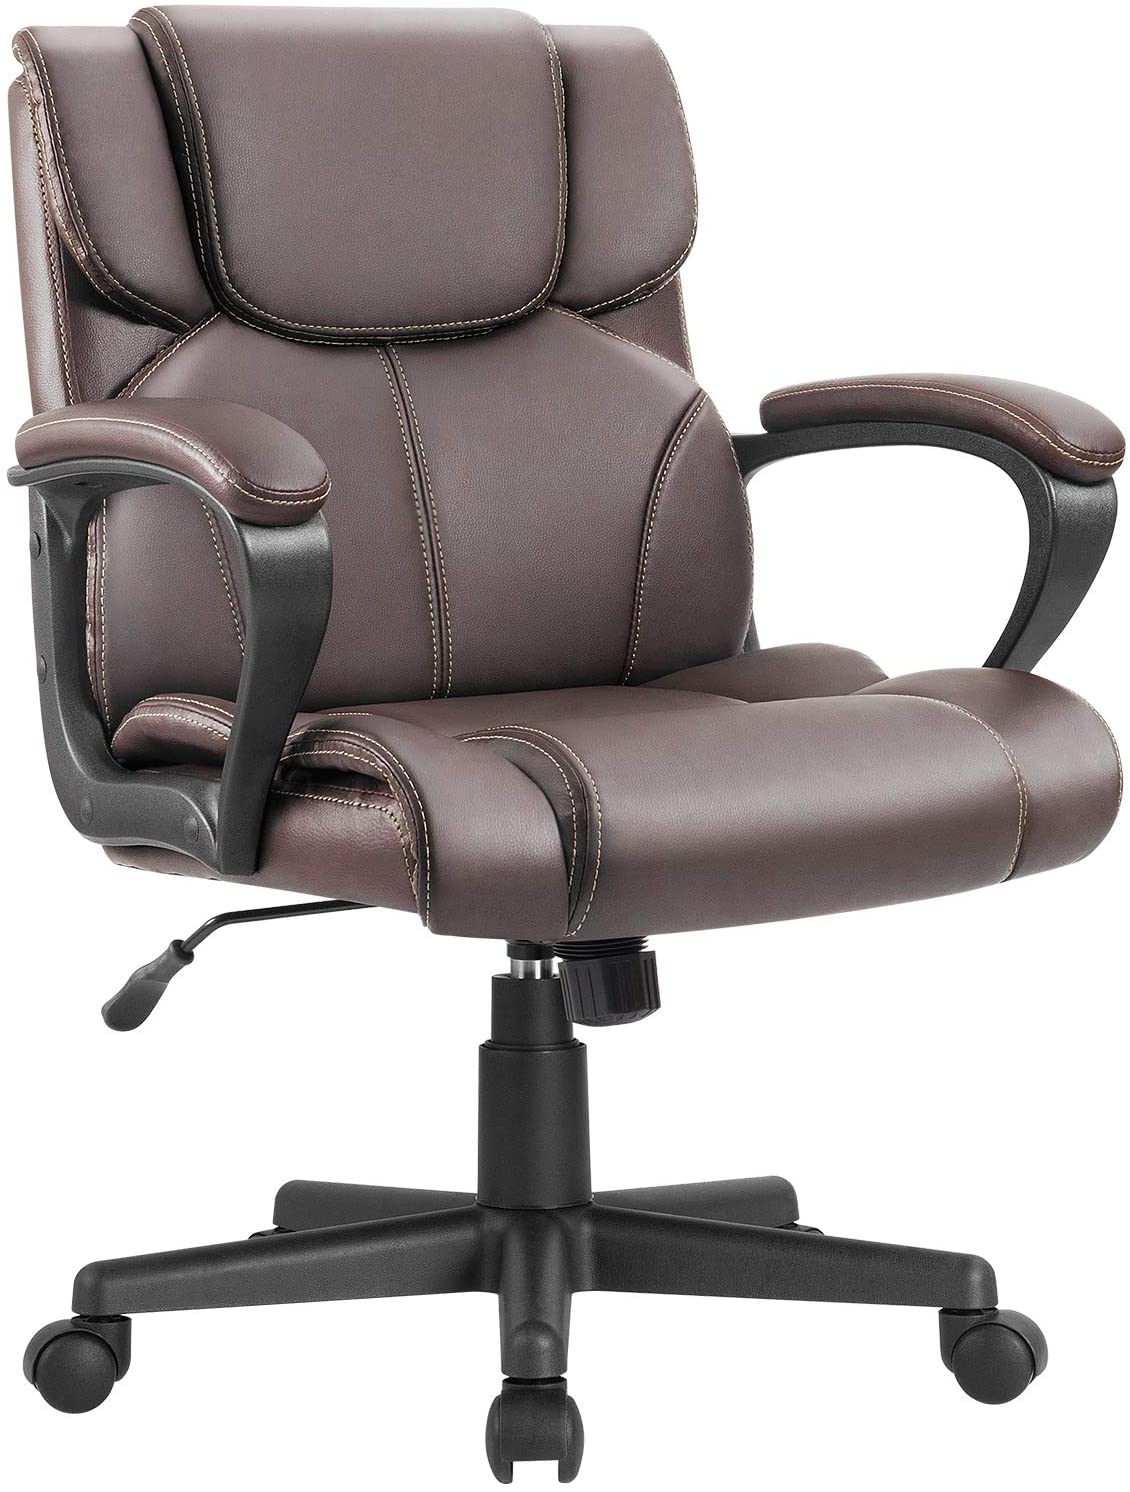 Furmax Mid Back Executive Office Chair Swivel Computer Task Chair with Armrests,Ergonomic Leather-Padded Desk Chair with Lumbar Support Brown